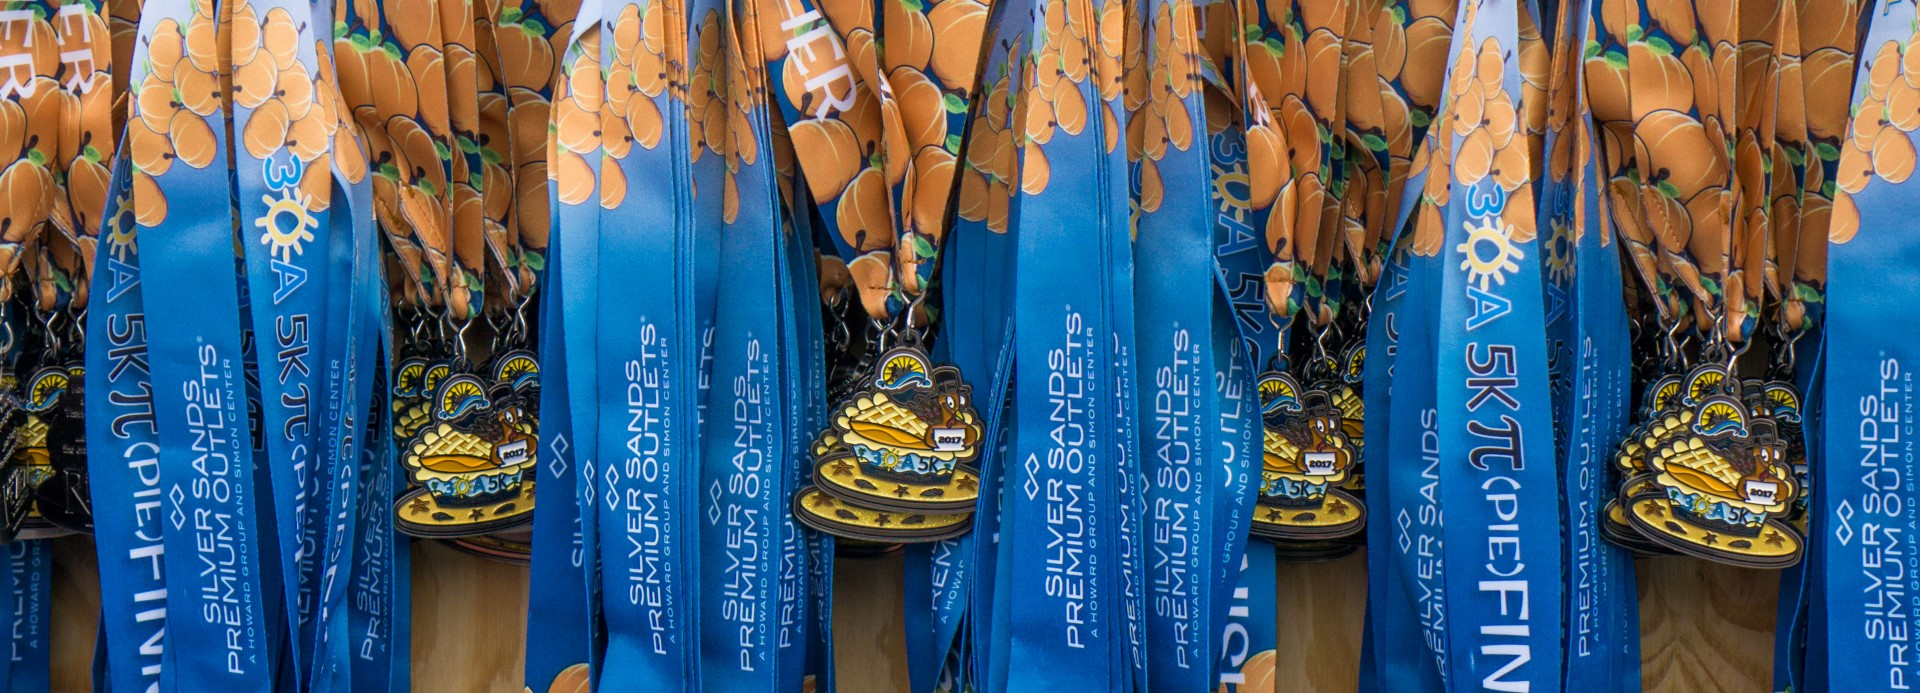 Signature Finisher Medals